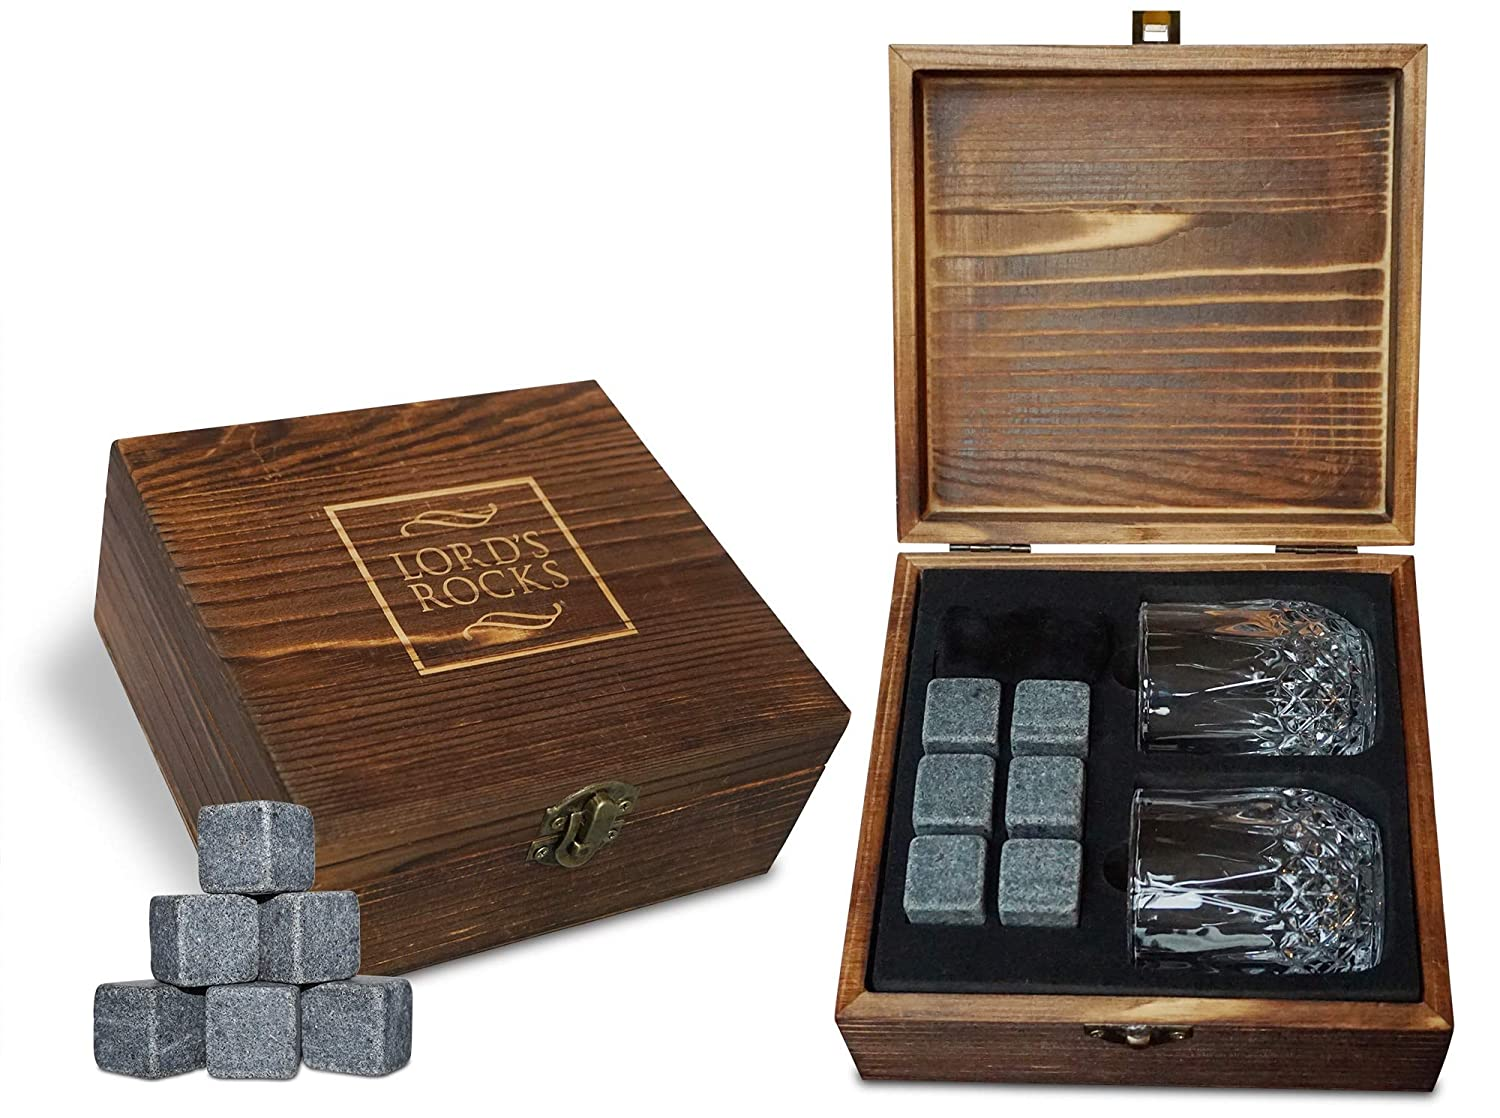 Whiskey Stones Gift Set - 8 Natural Granite Whisky Rocks To Chill Your Beverages and Drinks + 2 Whiskey Large Glasses in Handmade Wooden Box + eBook for FREE - Best Bar Accessories By Lord's Rocks LORD'S ROCKS